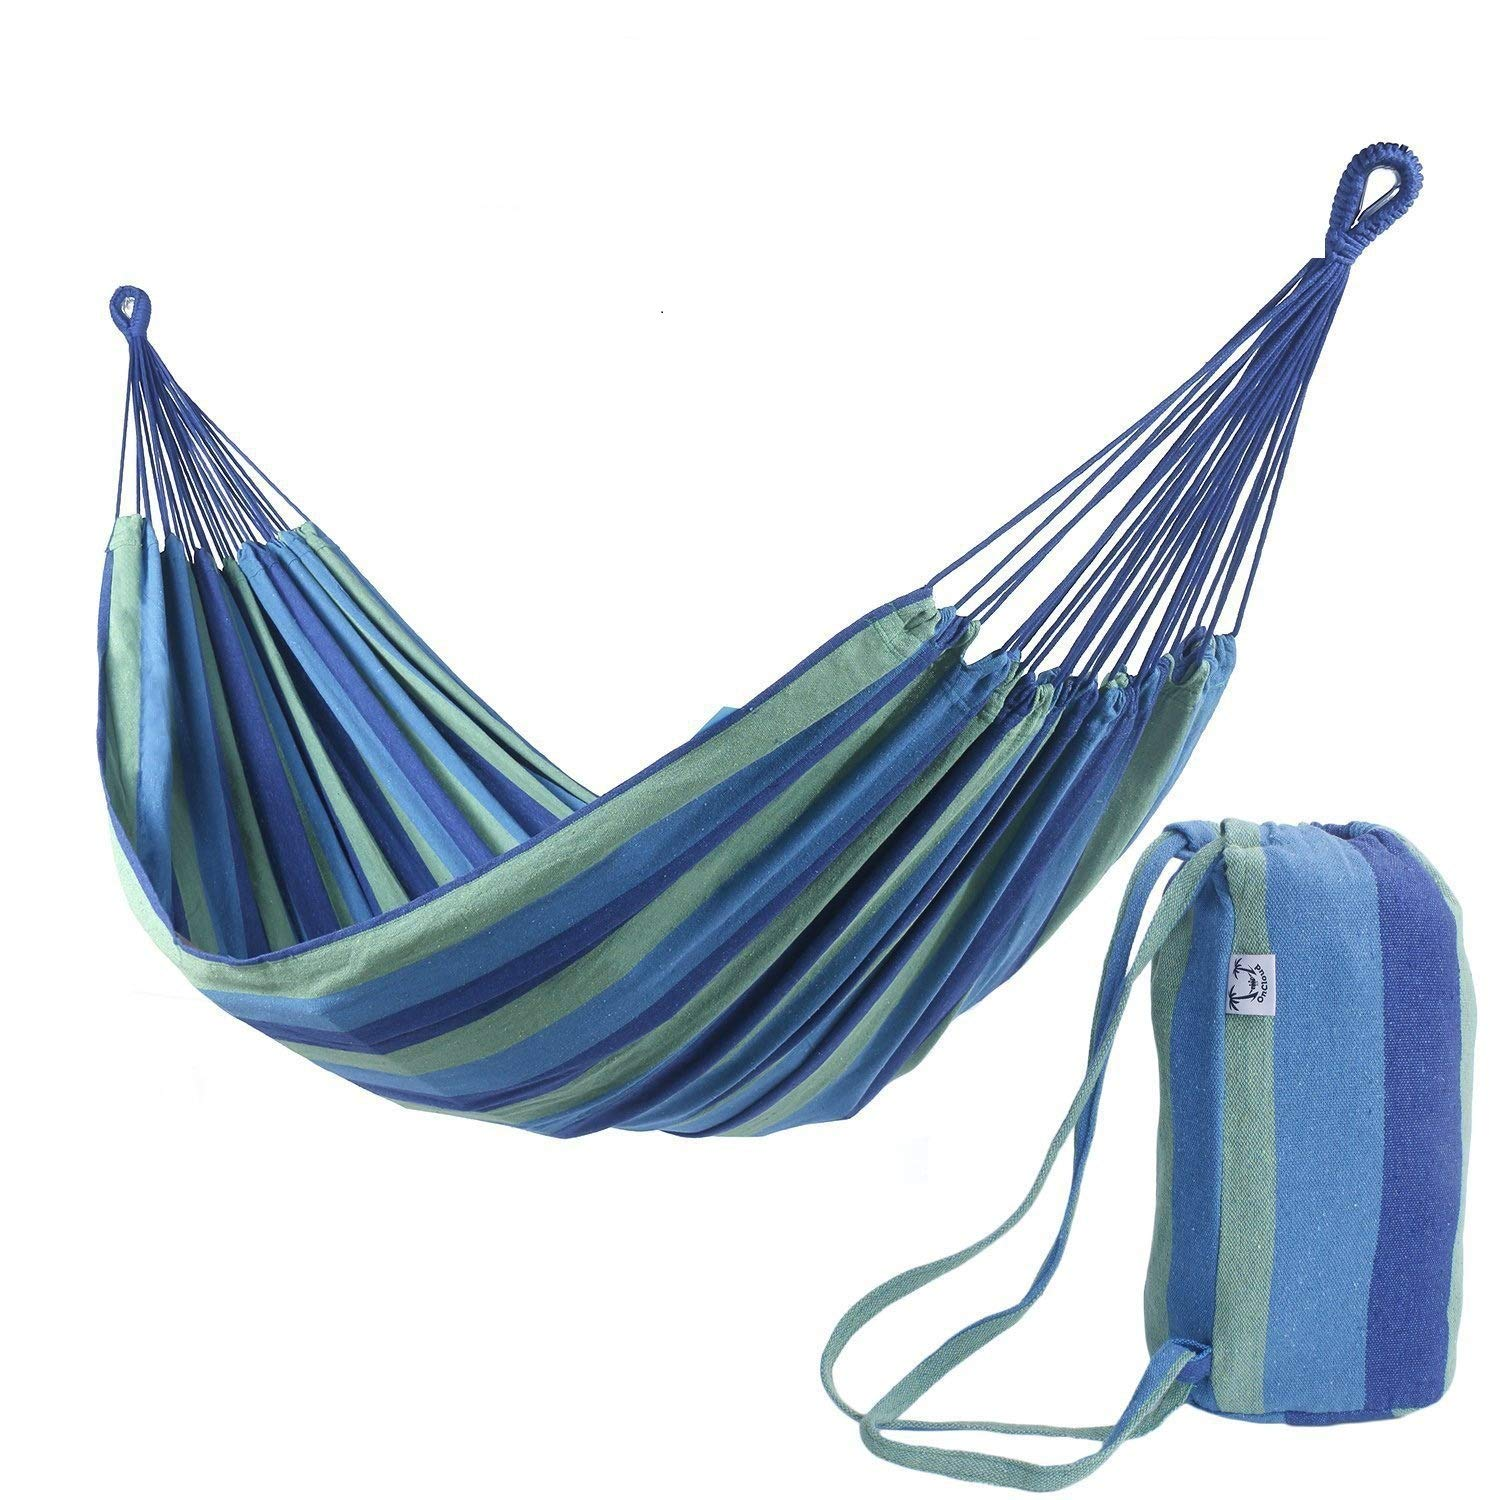 ONCLOUD Extra Long and Wide Double Hammock for Travel Camping Backyard, Porch, Outdoor or Indoor Use, Carrying Pouch Included (Blue/Green Stripes) by ONCLOUD